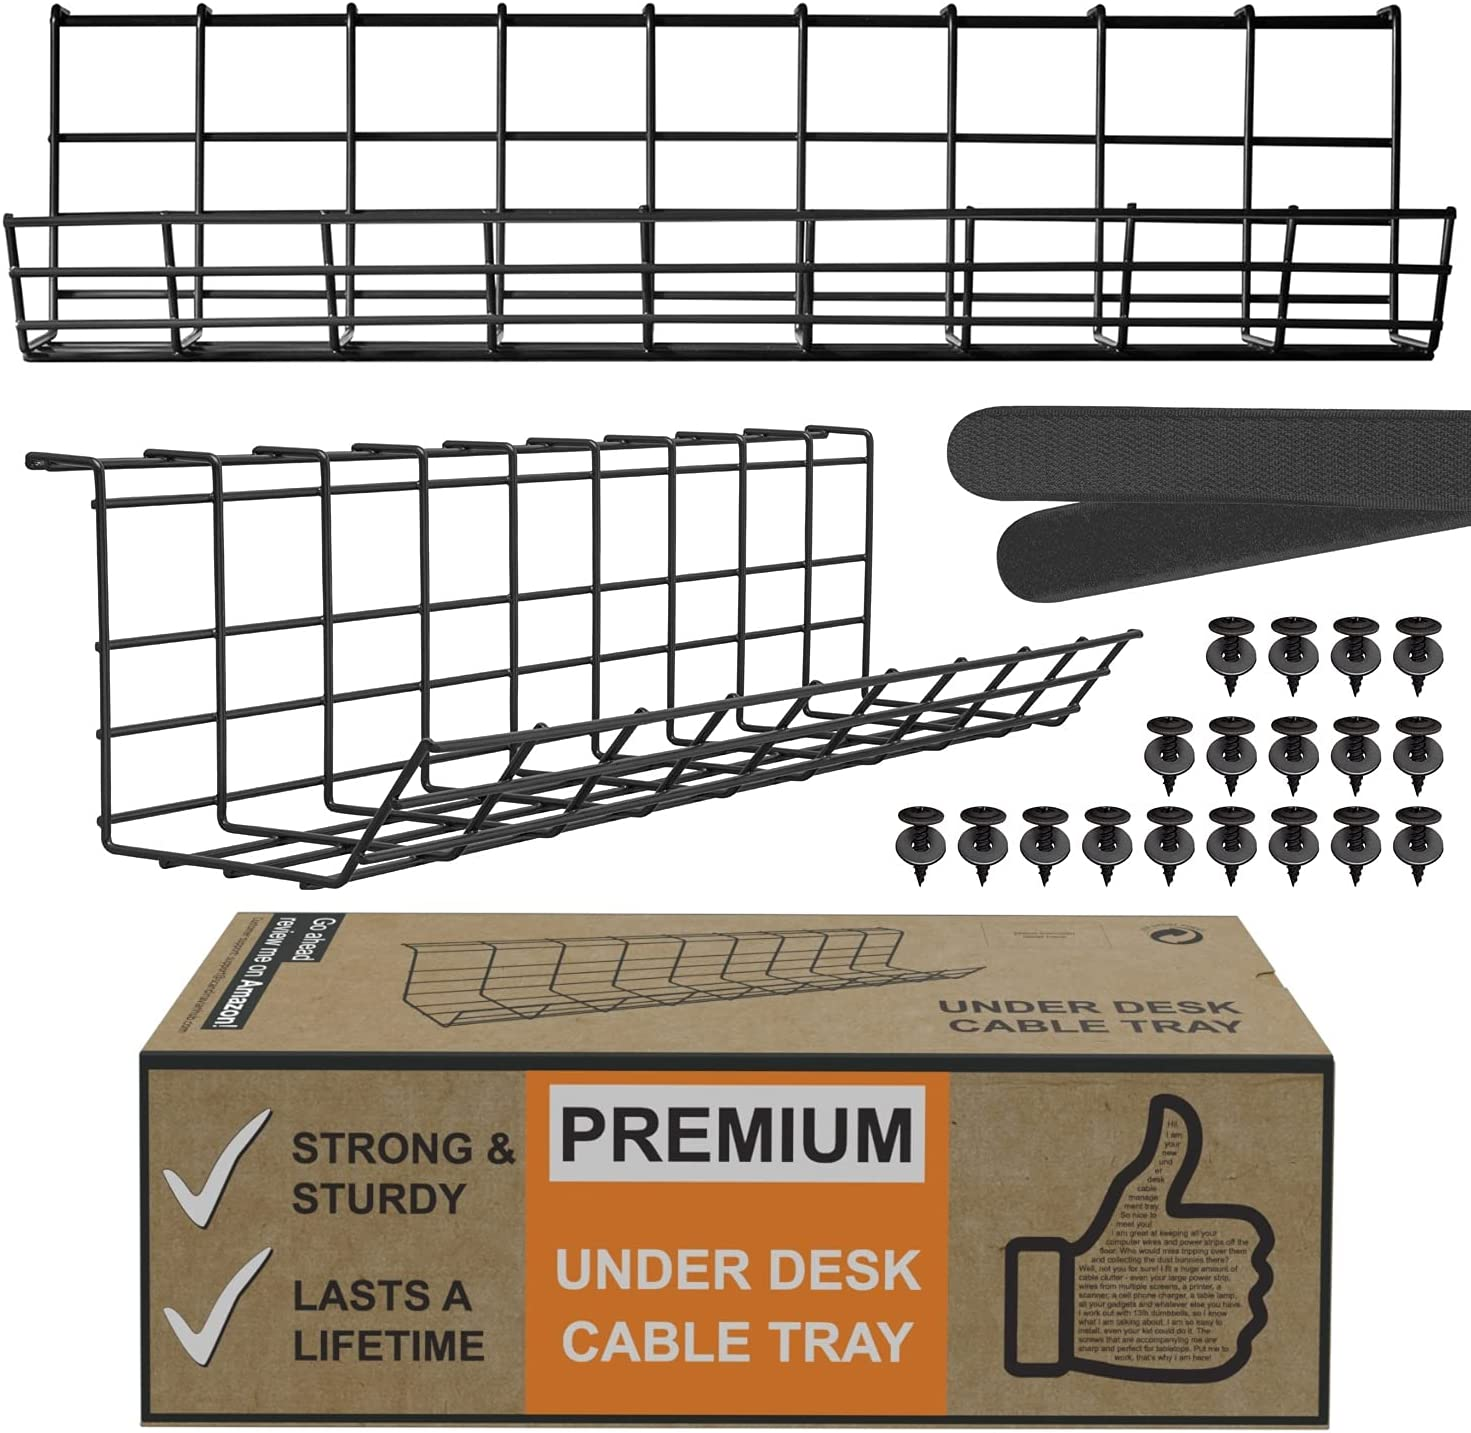 Scandinavian Hub Under Max 71% OFF Desk Cable - Set Management Shipping included Trays Black